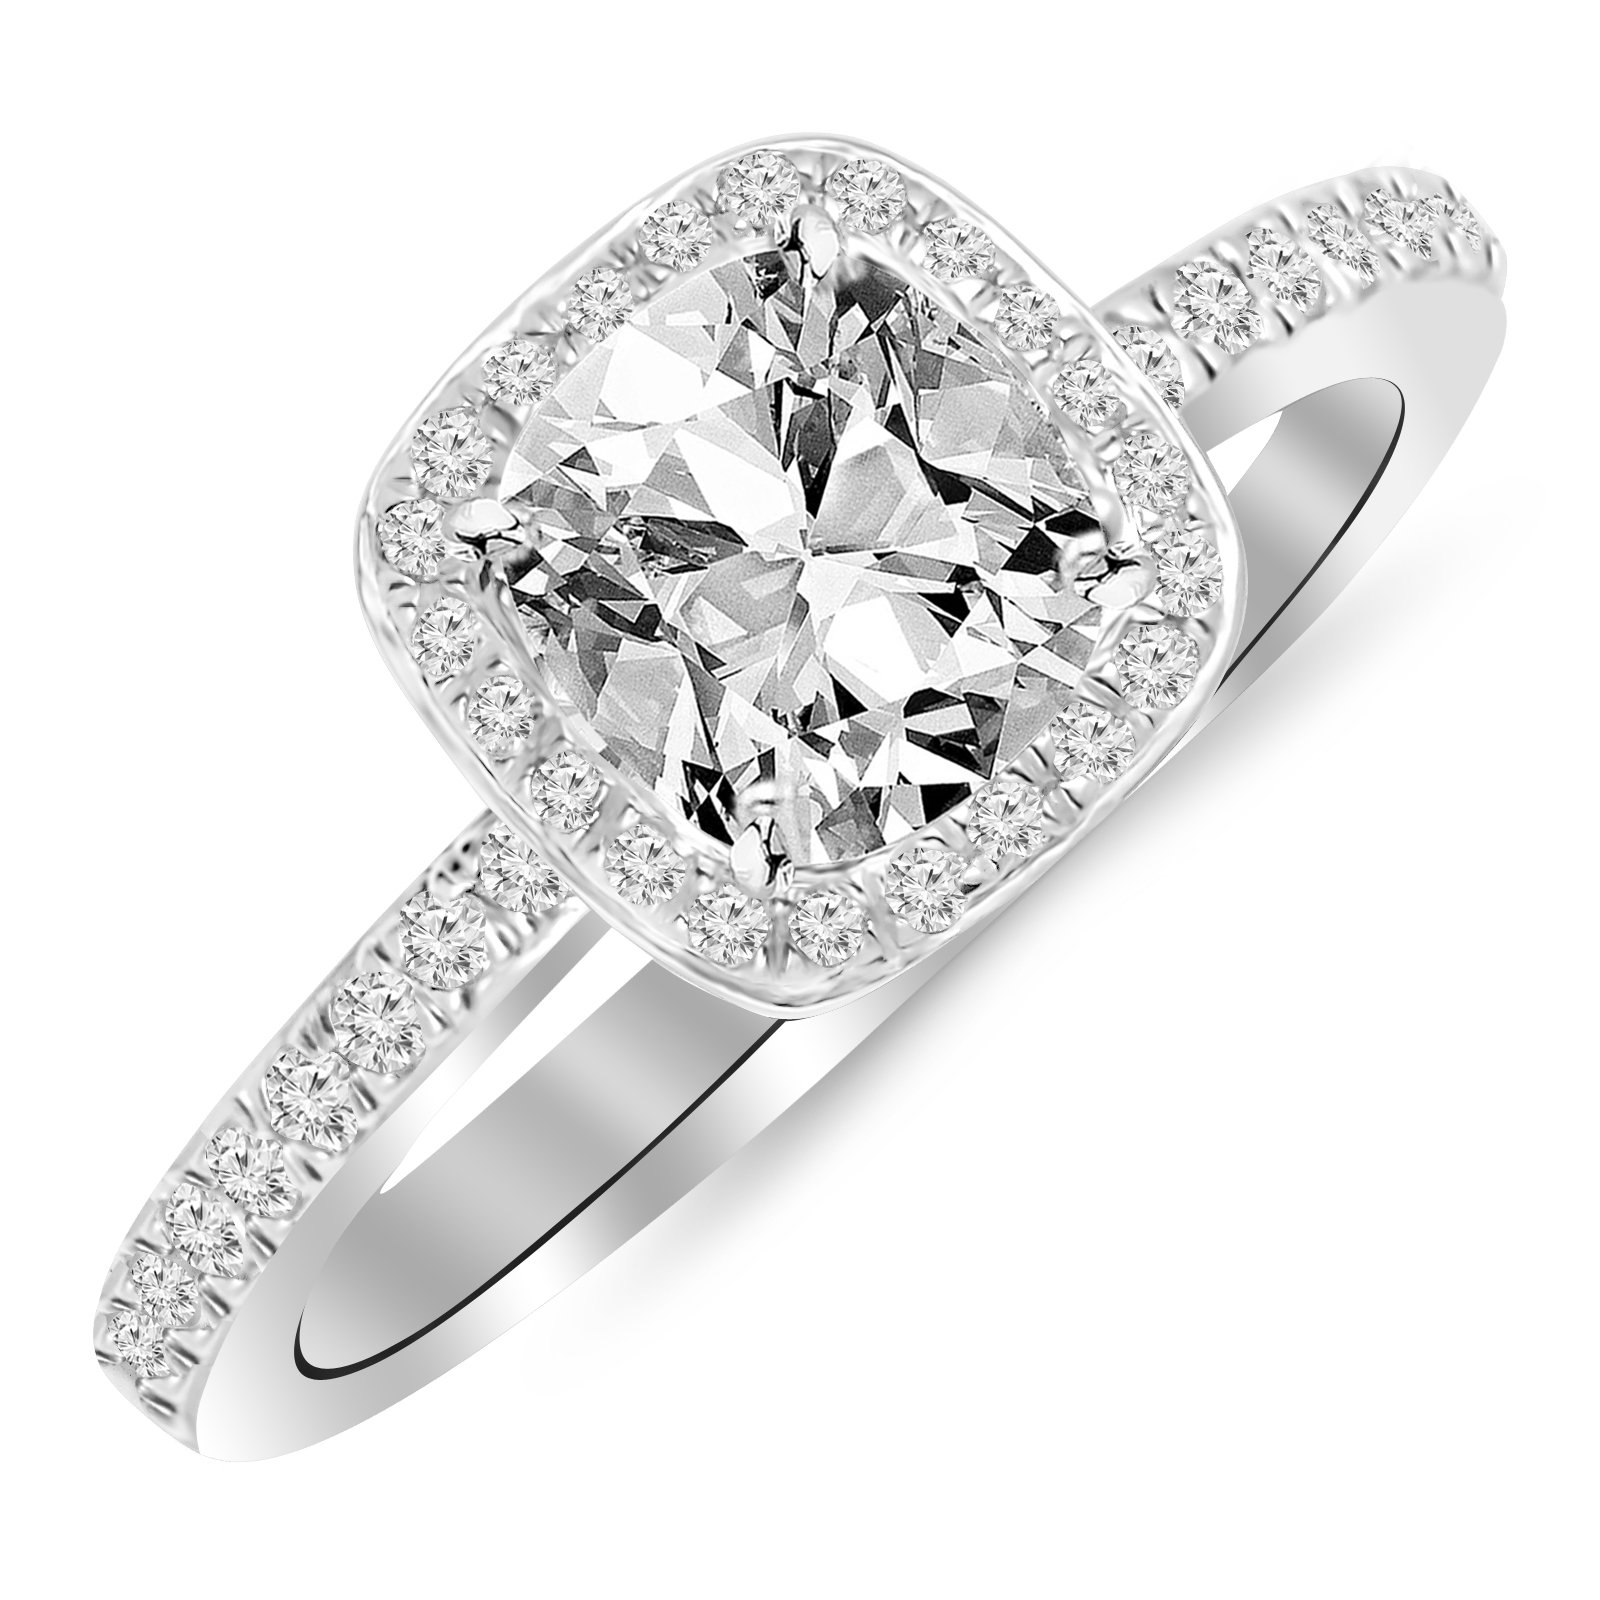 1 Carat t.w. 14K White Gold Classic Halo Style Cushion Shape Diamond Engagement Ring with a 3/4 Ct Forever Brilliant Cushion Moissanite Center (White-Gold, 9)